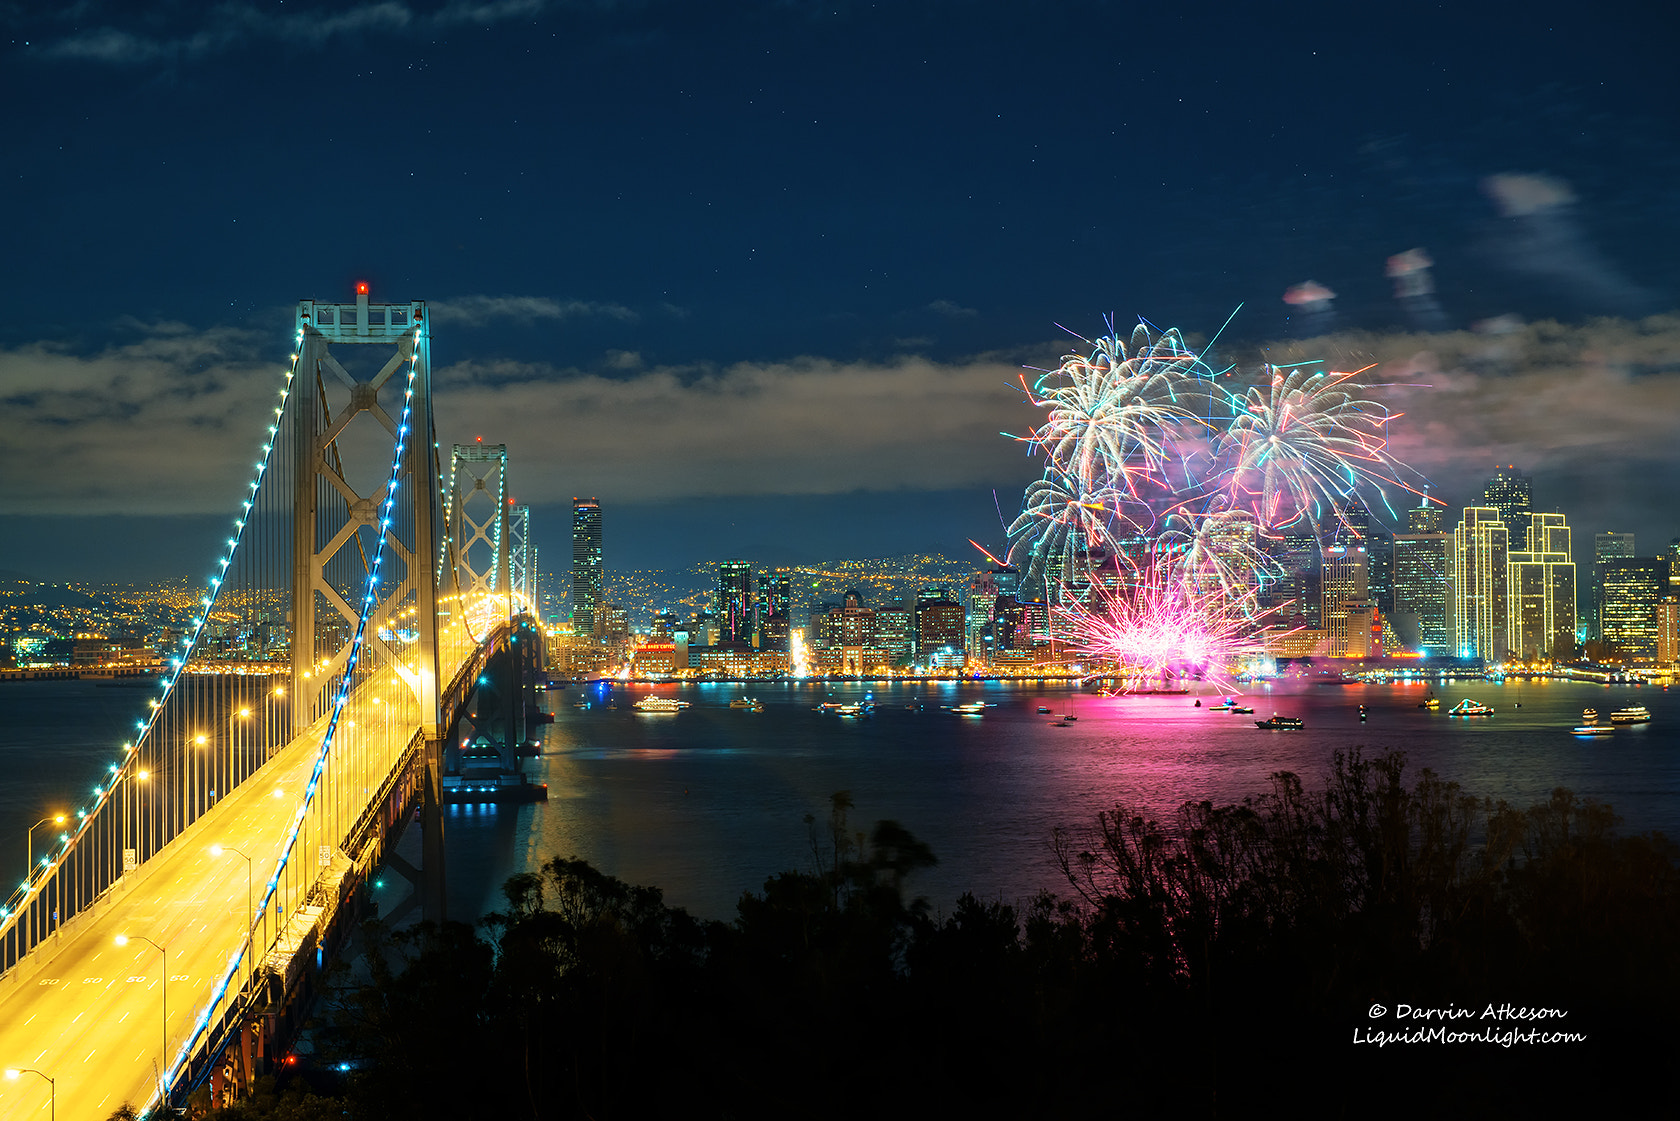 Photograph Happy New Year 2013! - San Francisco Fireworks Display   by Darvin Atkeson on 500px